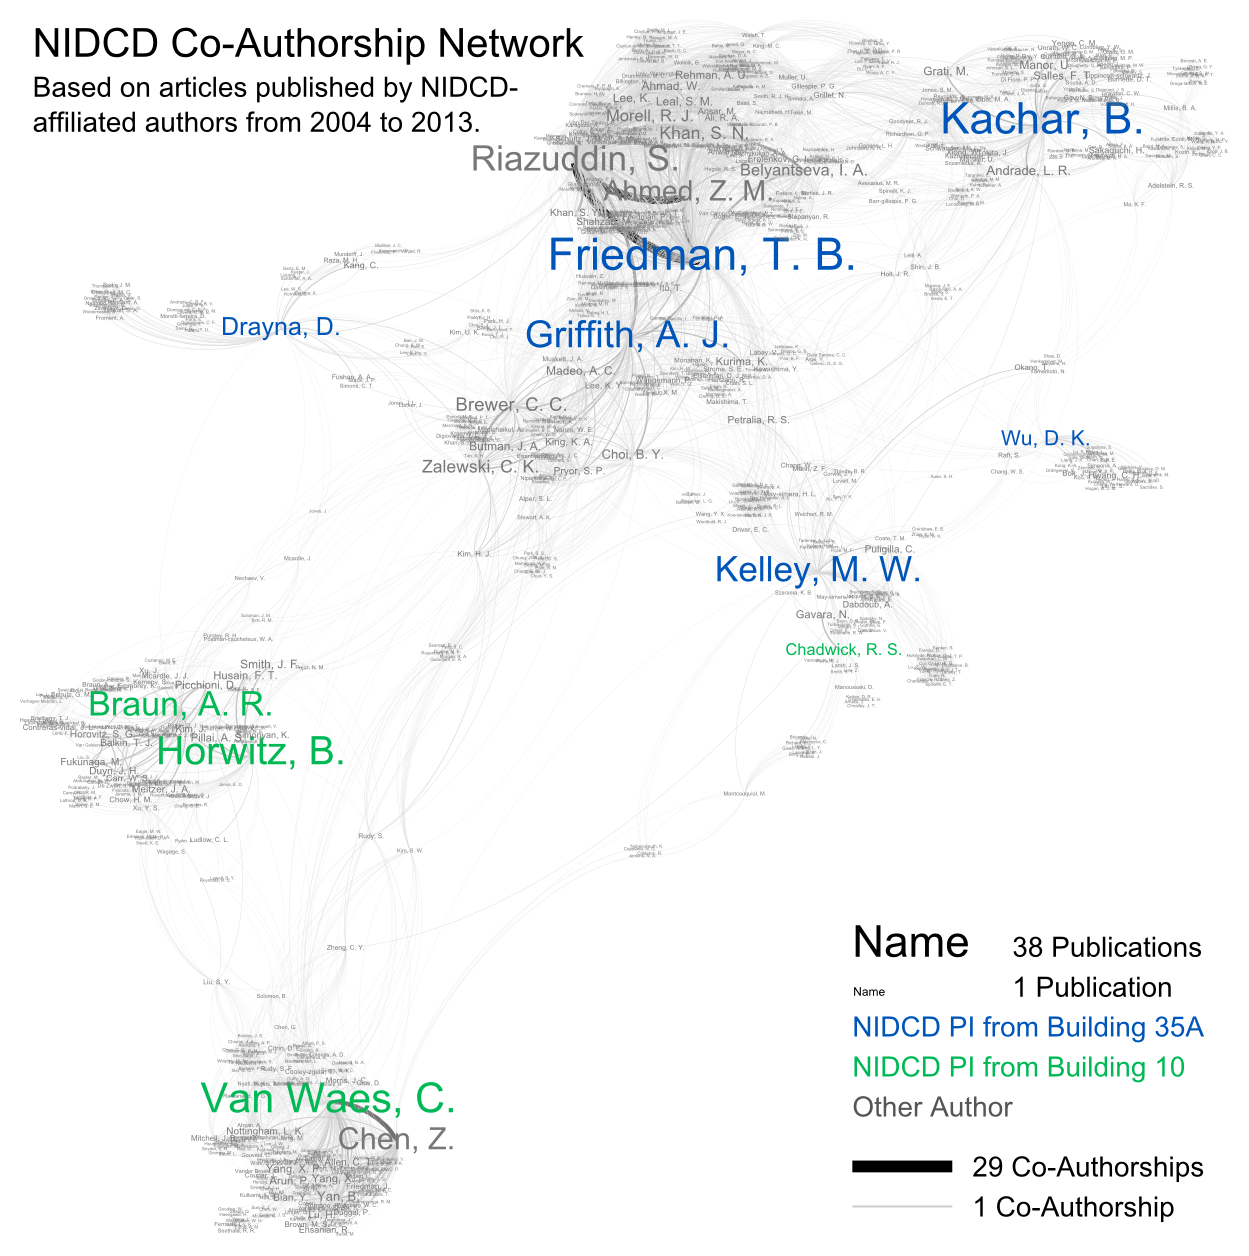 NIDCD Co-Authorship Network